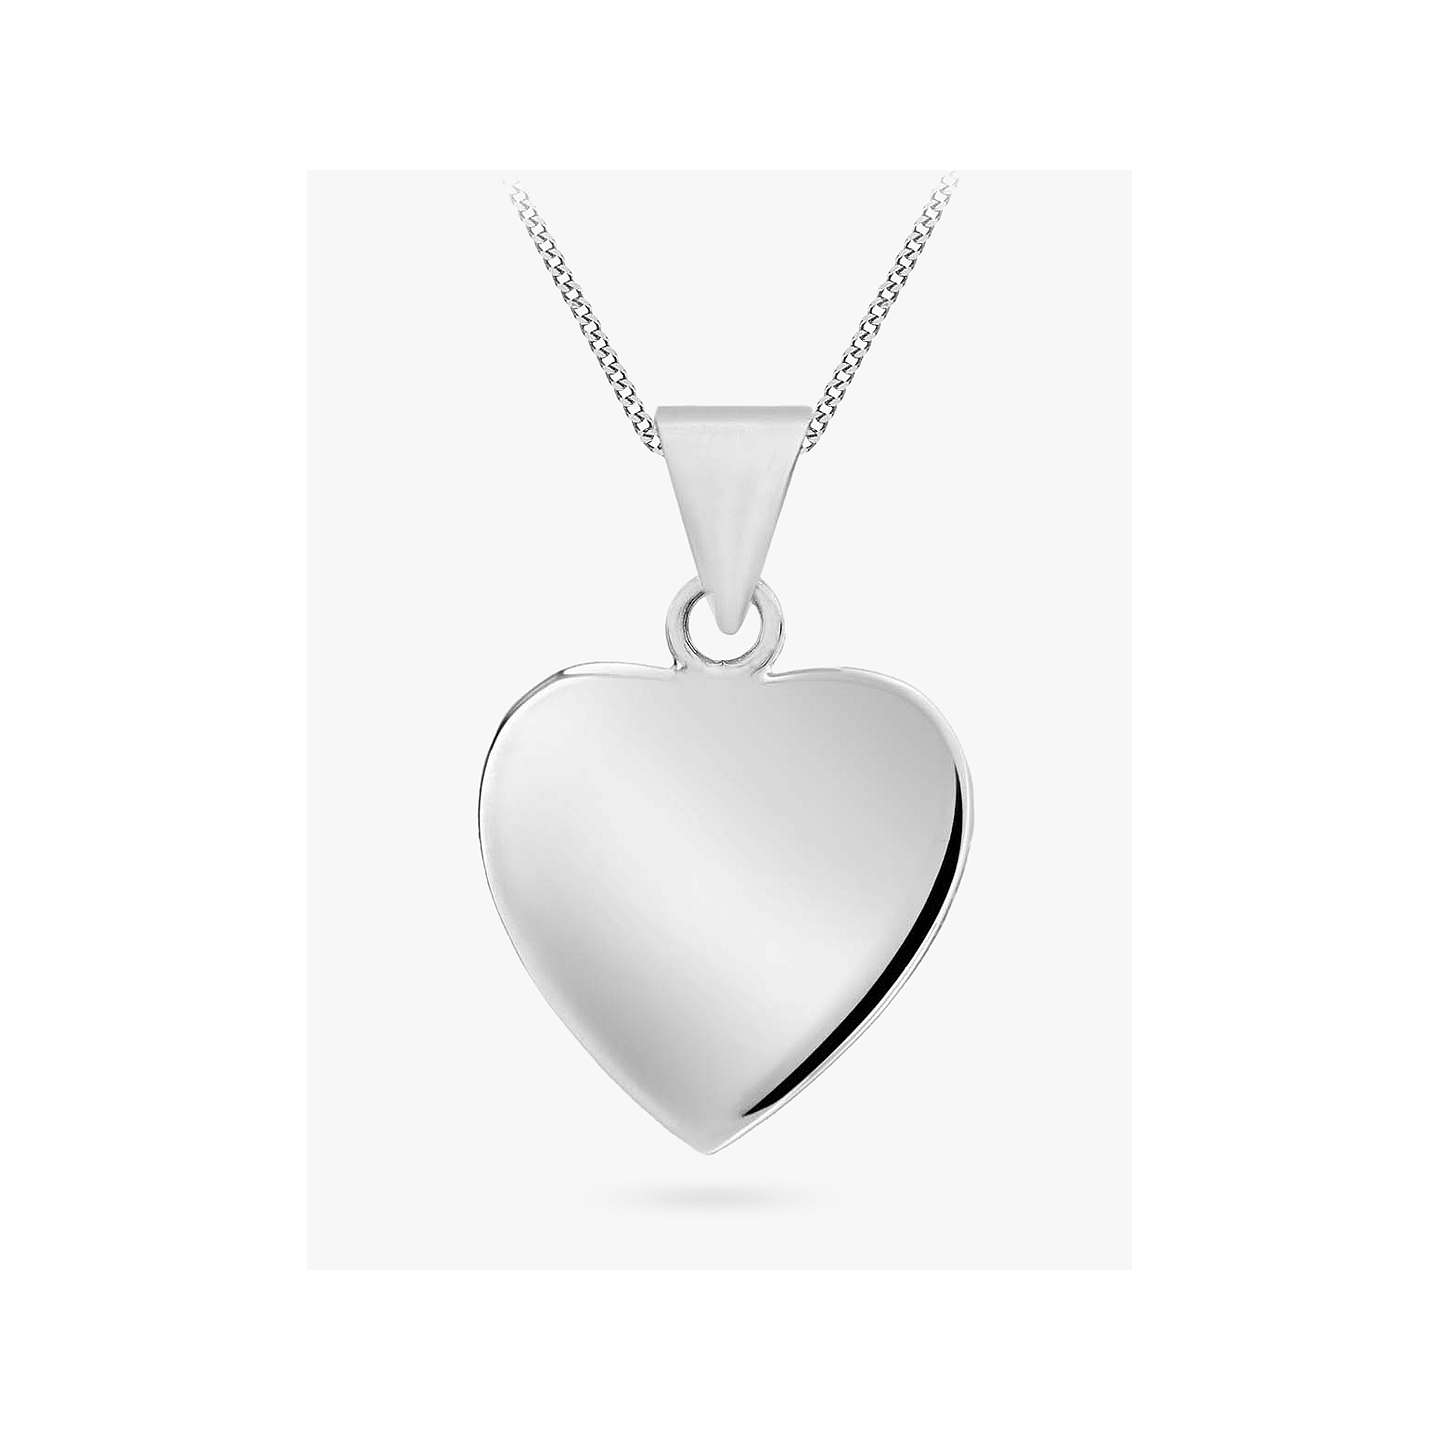 steel stole my set girl heart jewellery necklace eg and necklaces jewelry key stainless engraved chain